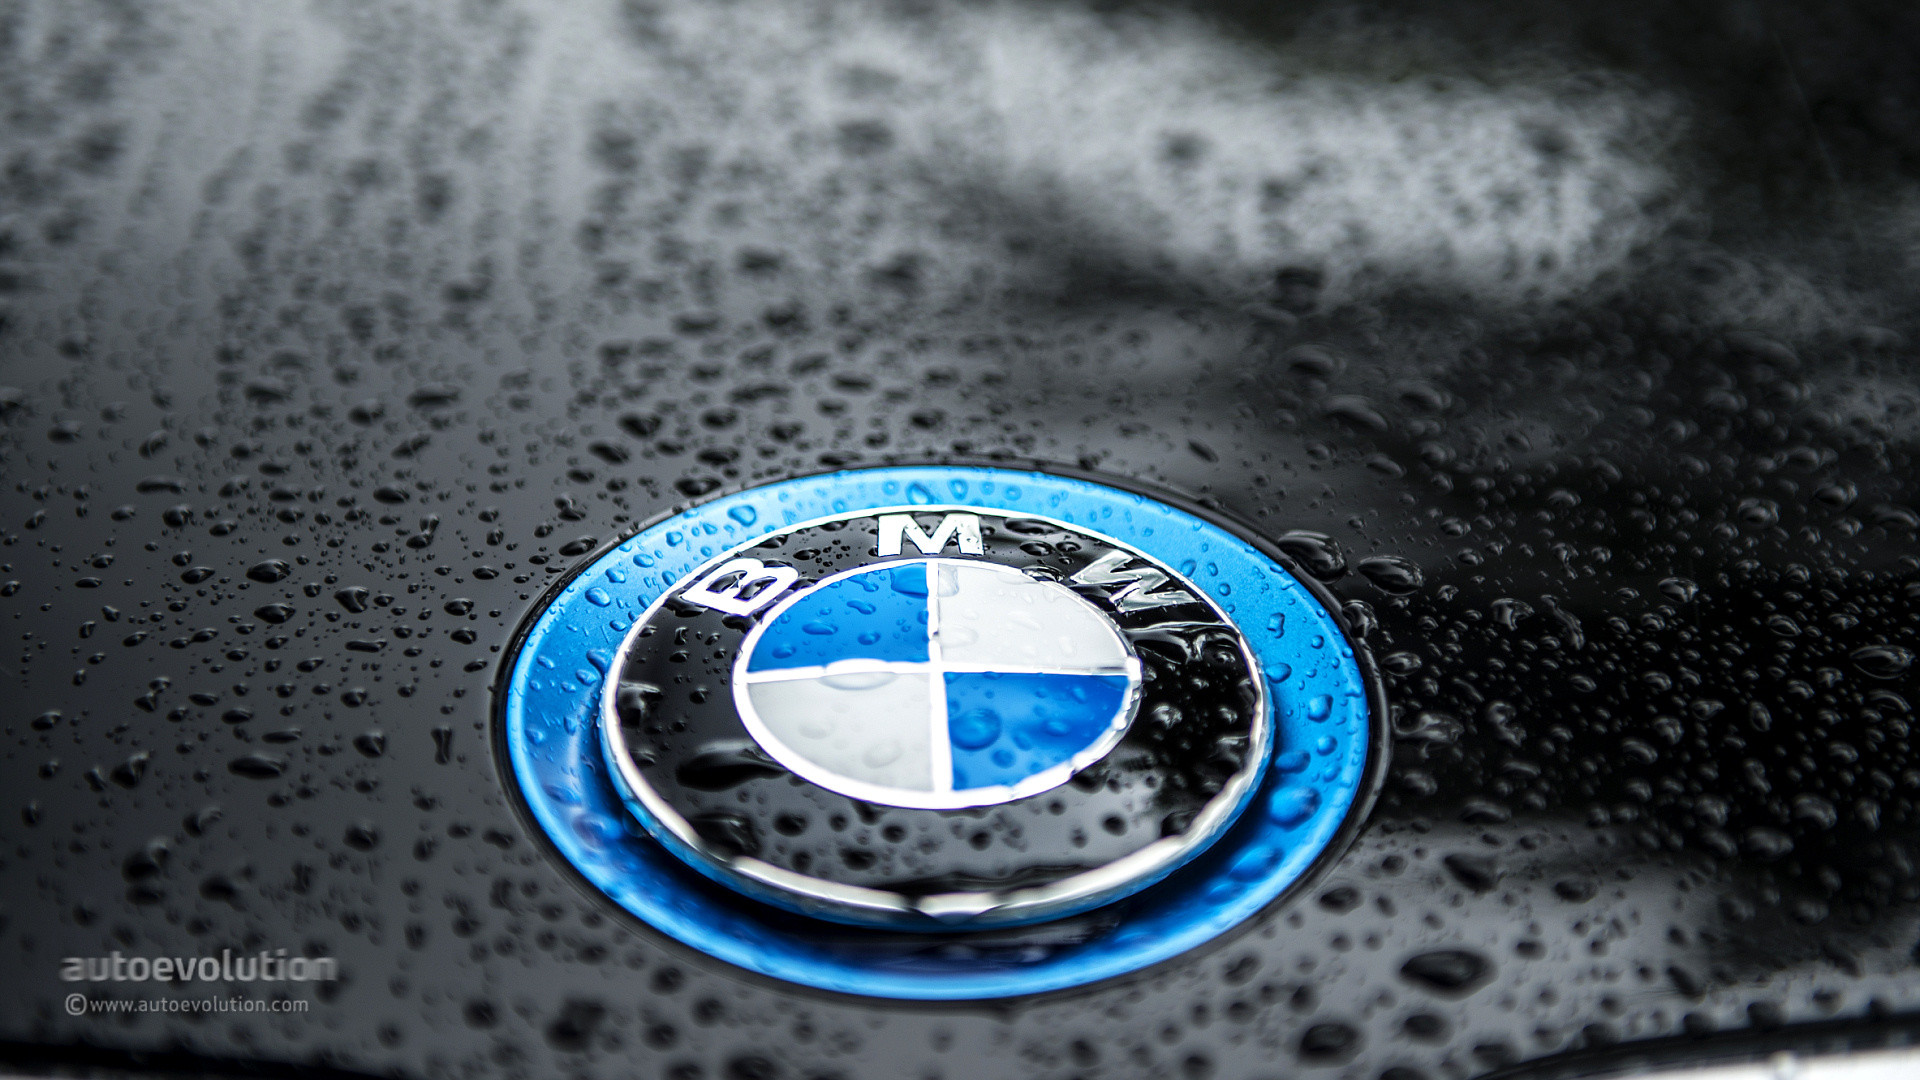 Not too long ago, people couldn't have immagined this famous roundel  surrounded by the blue of the green motoring sea and yet here it is. Mind  you, BMW has …